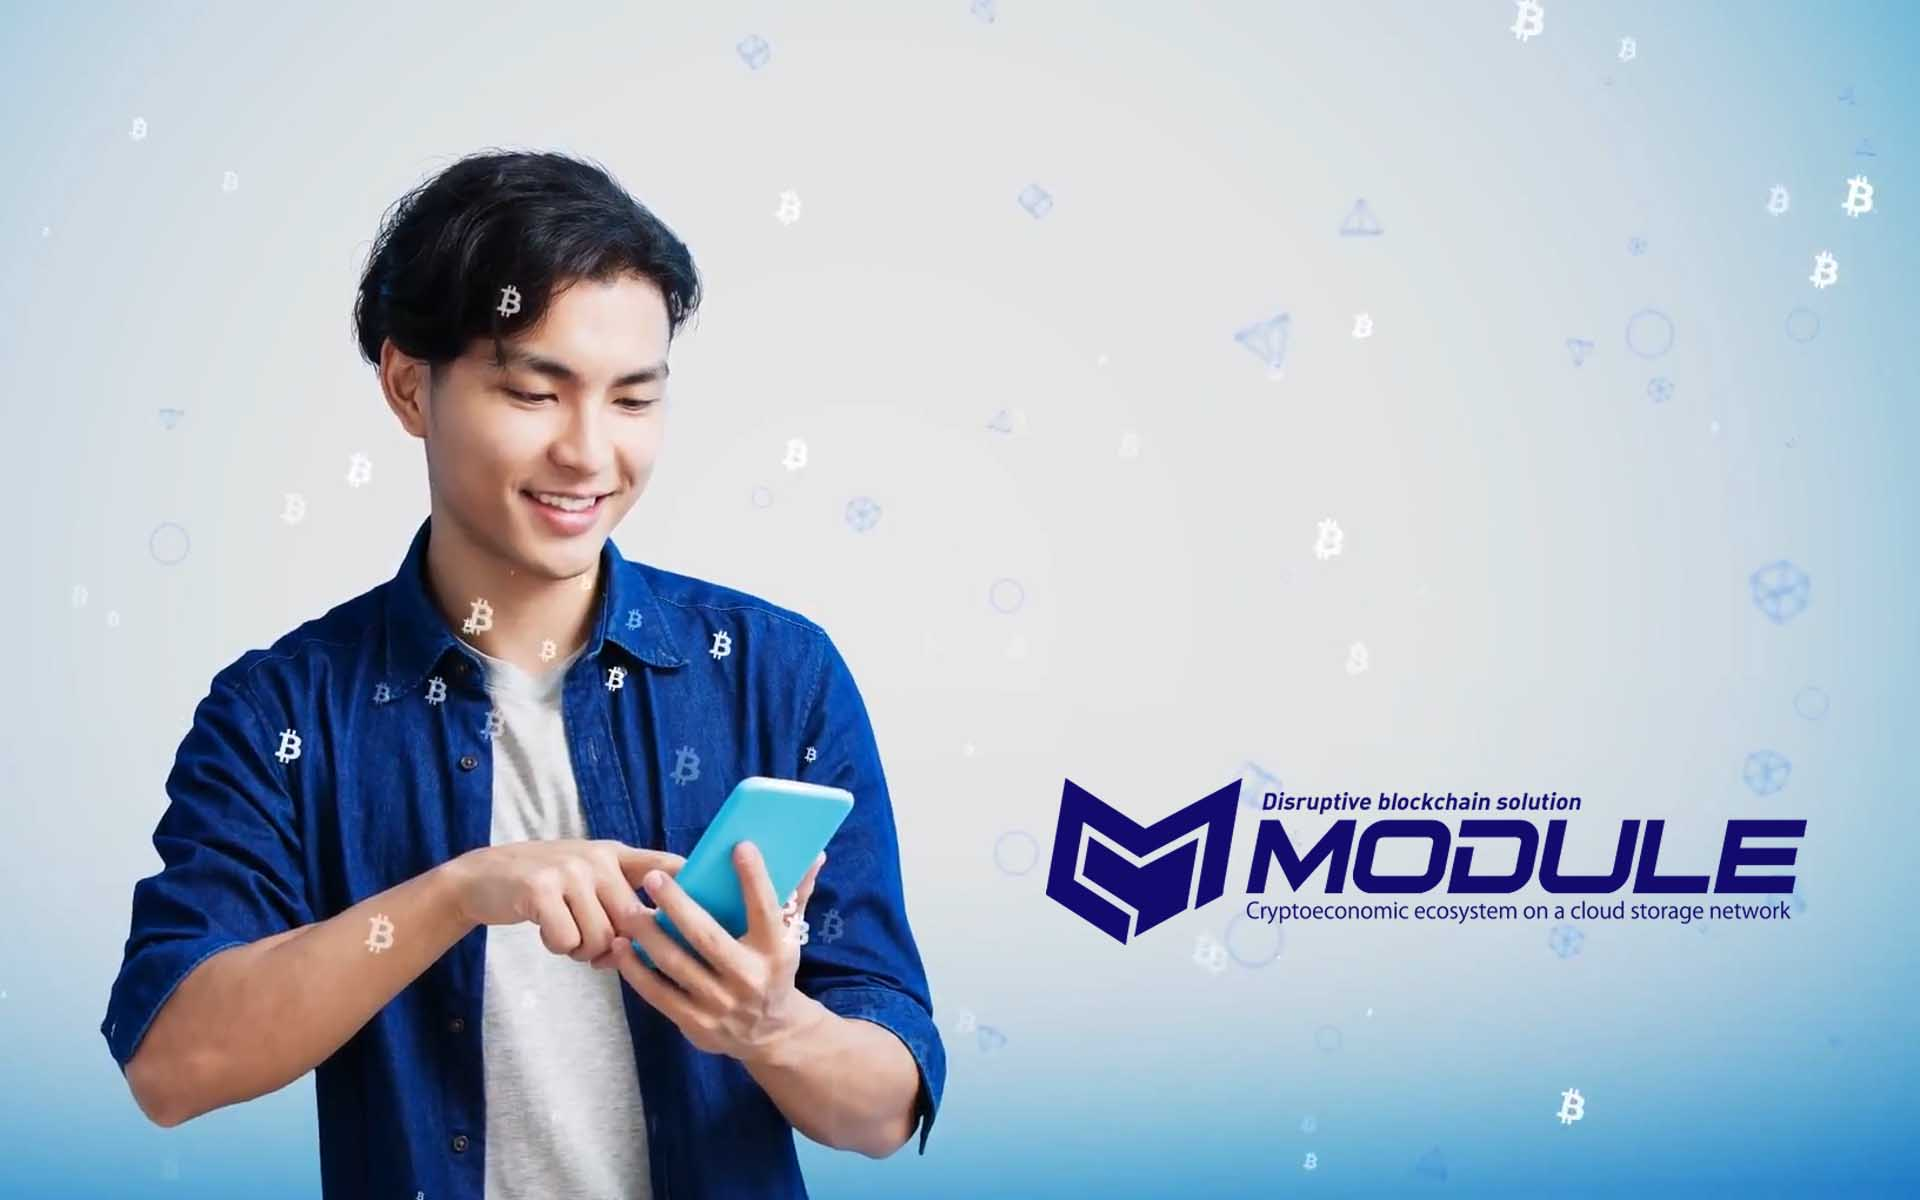 Japan's Module Platform Offers Users the Chance to Earn Cryptocurrency with Their Gadgets